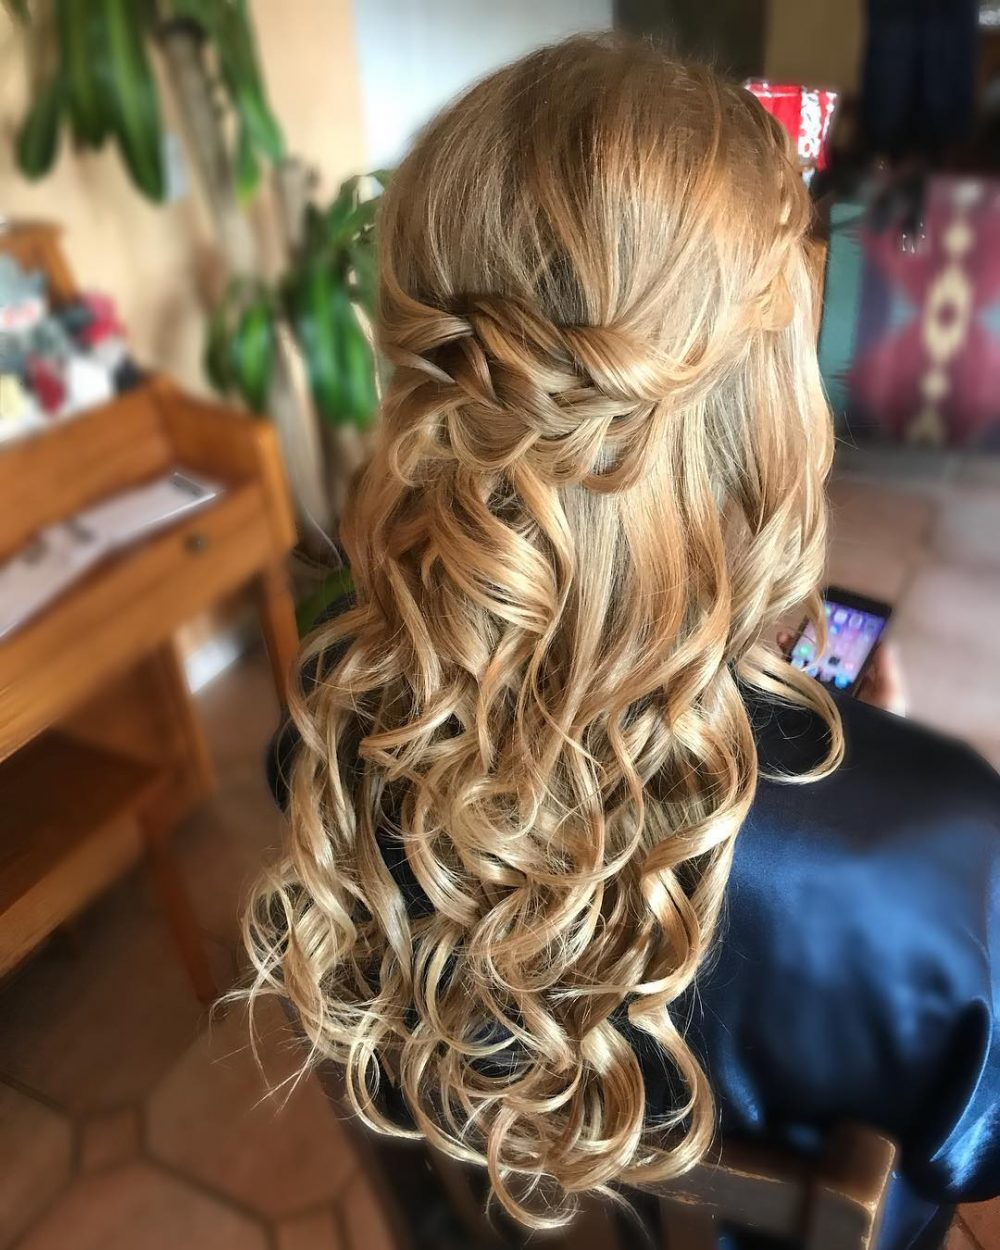 up styles for long thick hair 27 gorgeous wedding hairstyles for hair in 2019 6938 | boho half up half down wedding long